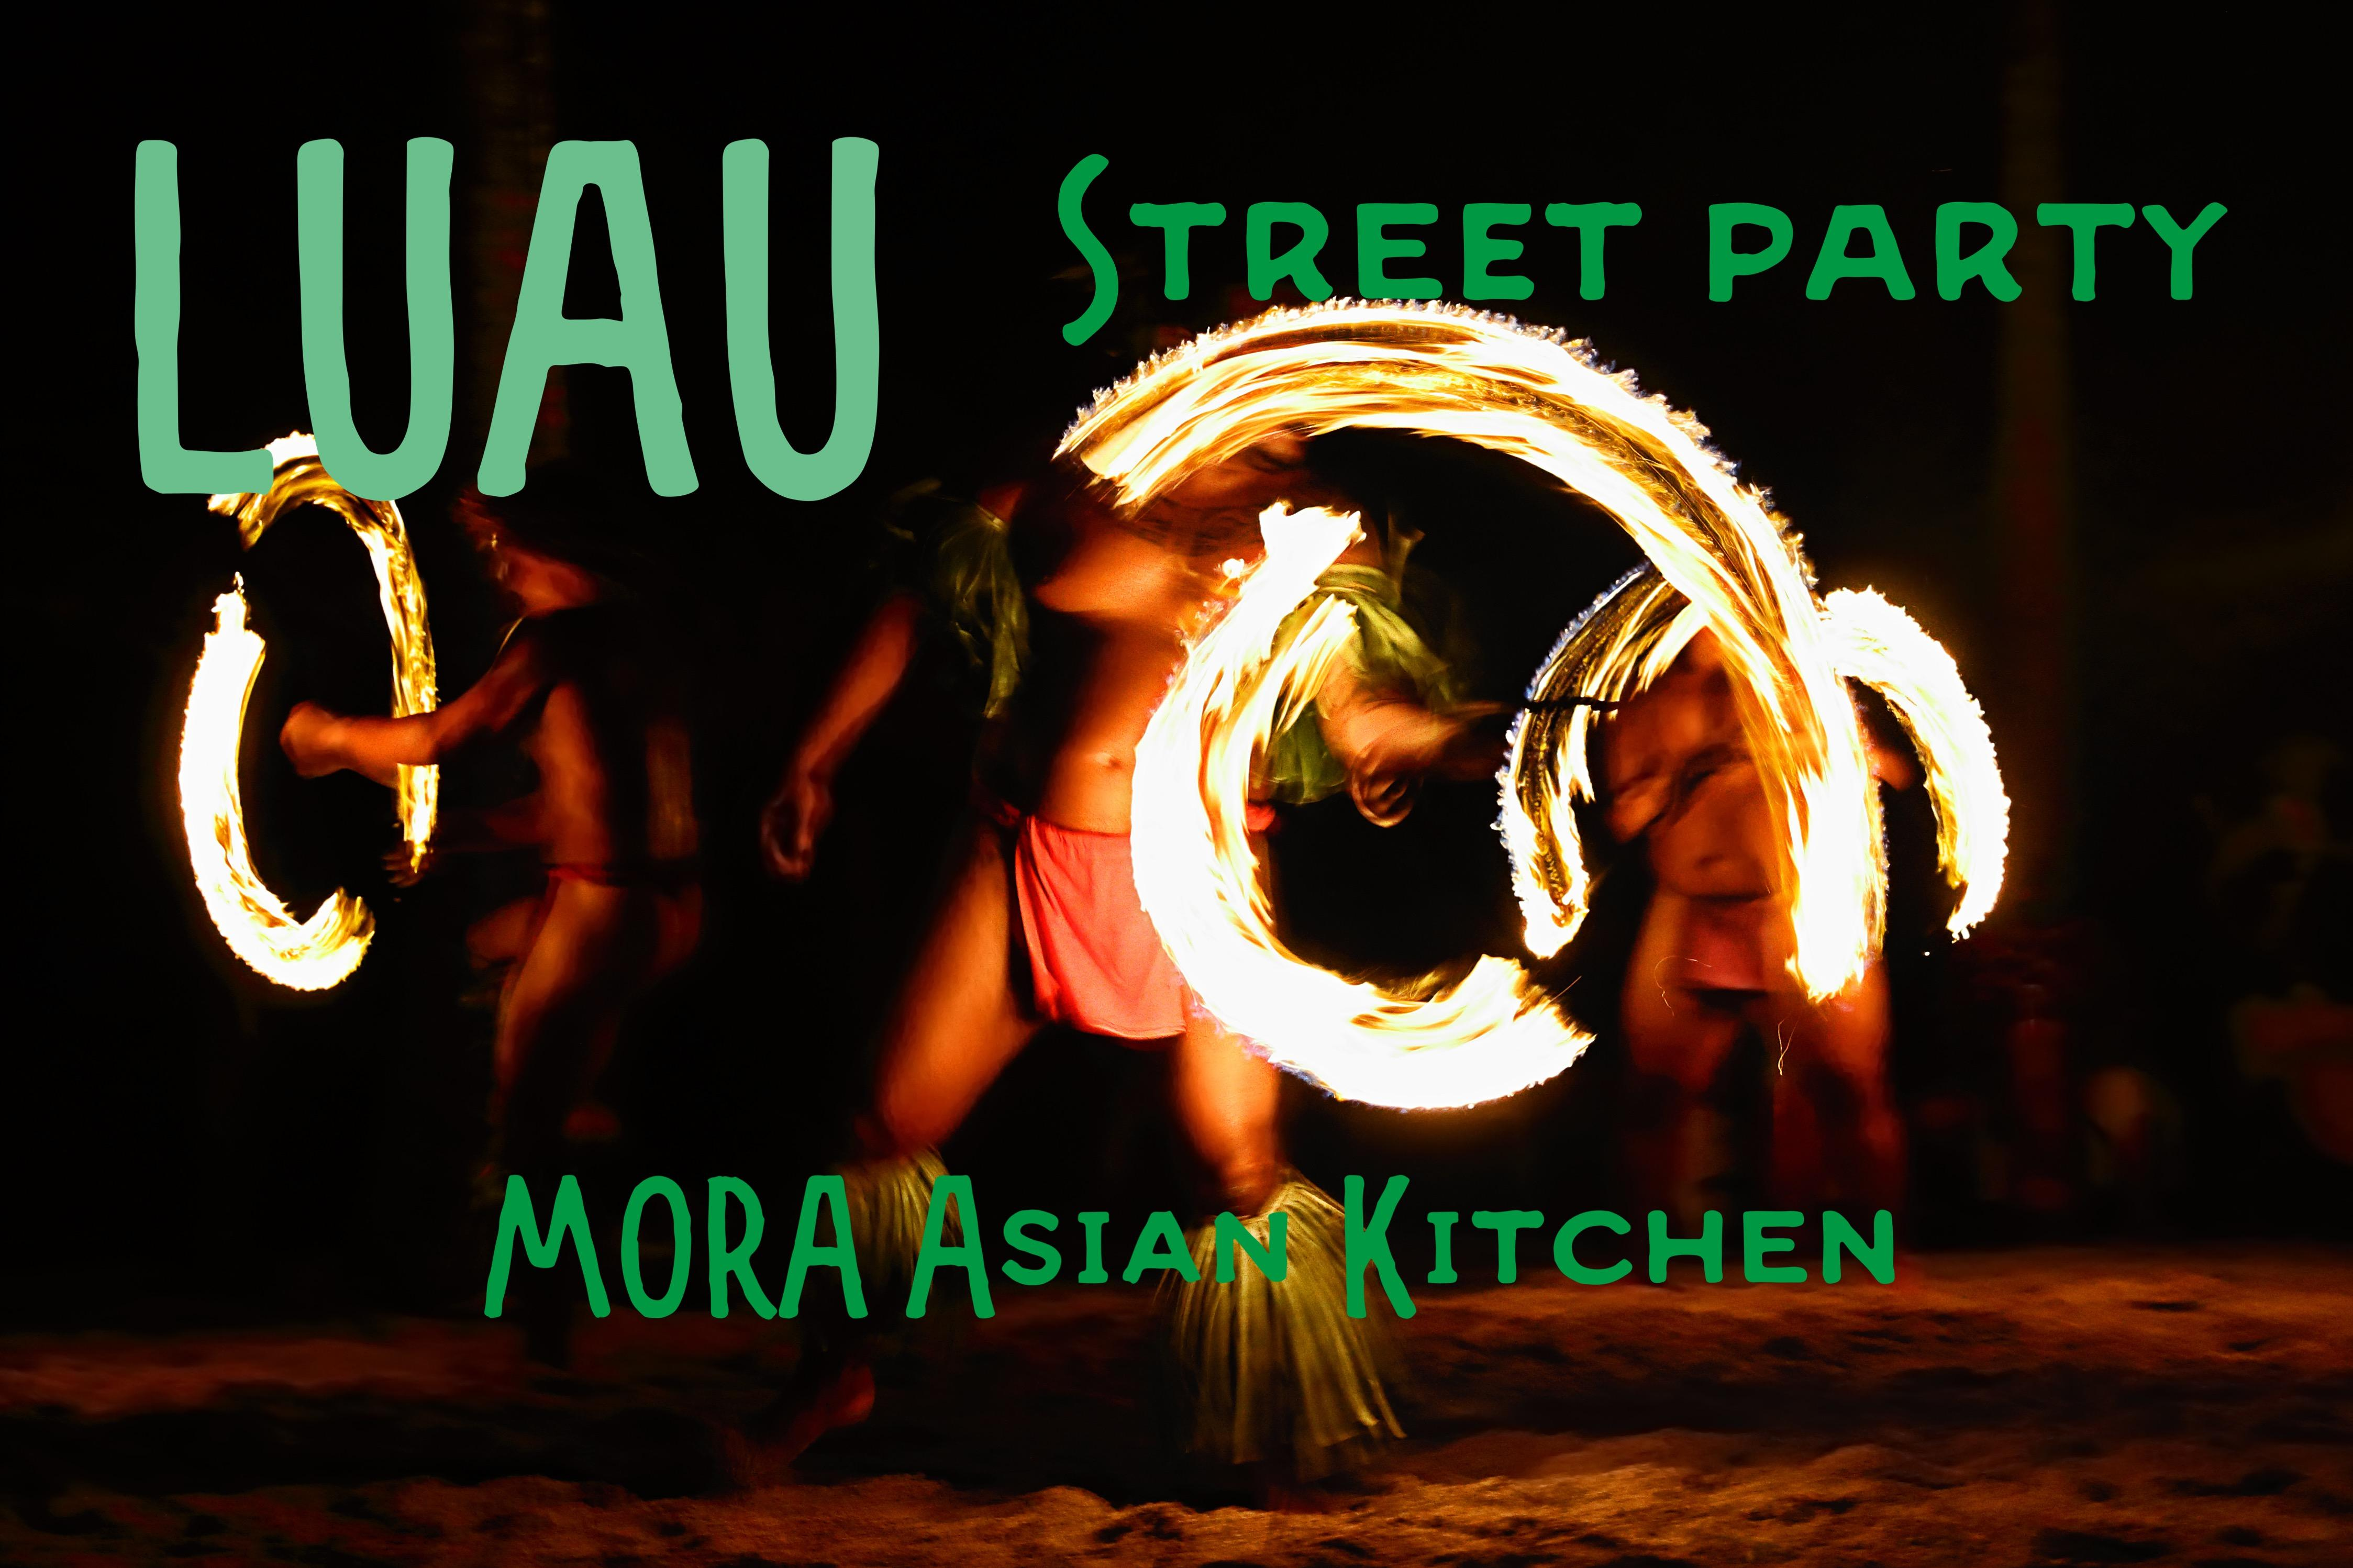 LUAU Street Party by MORA